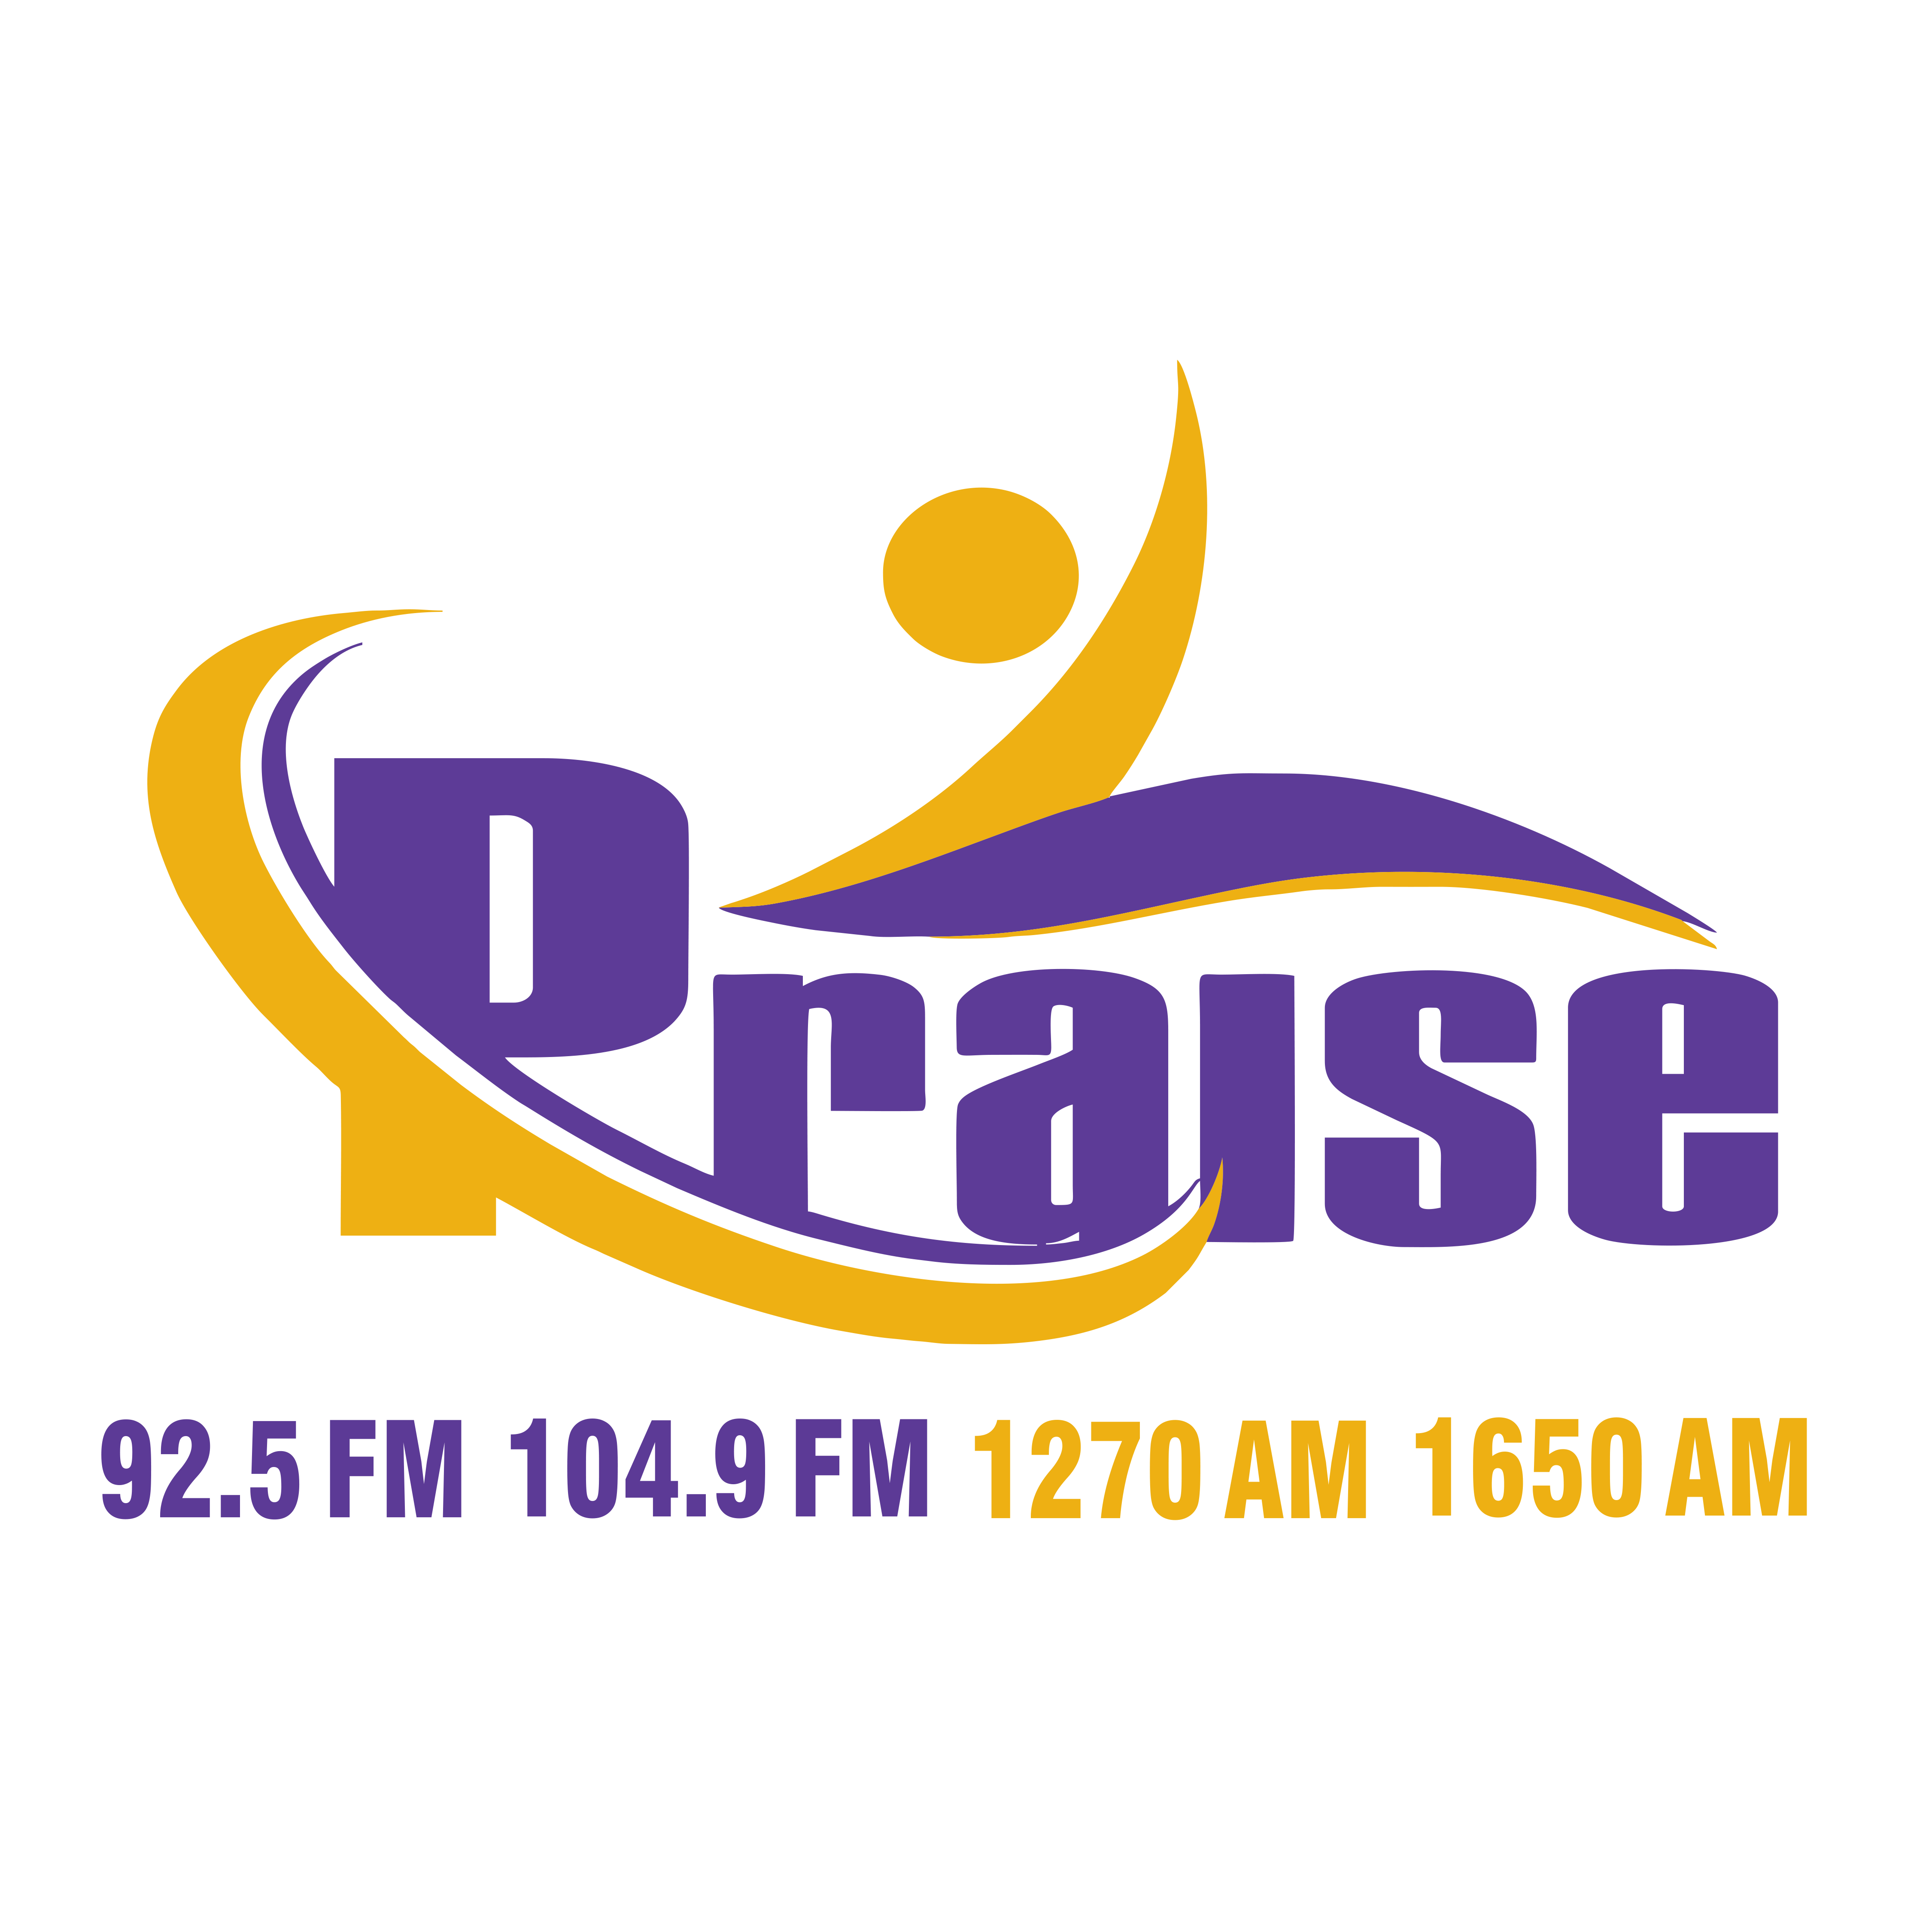 WTJZ Praise Logo_REVISED 02-06-2020